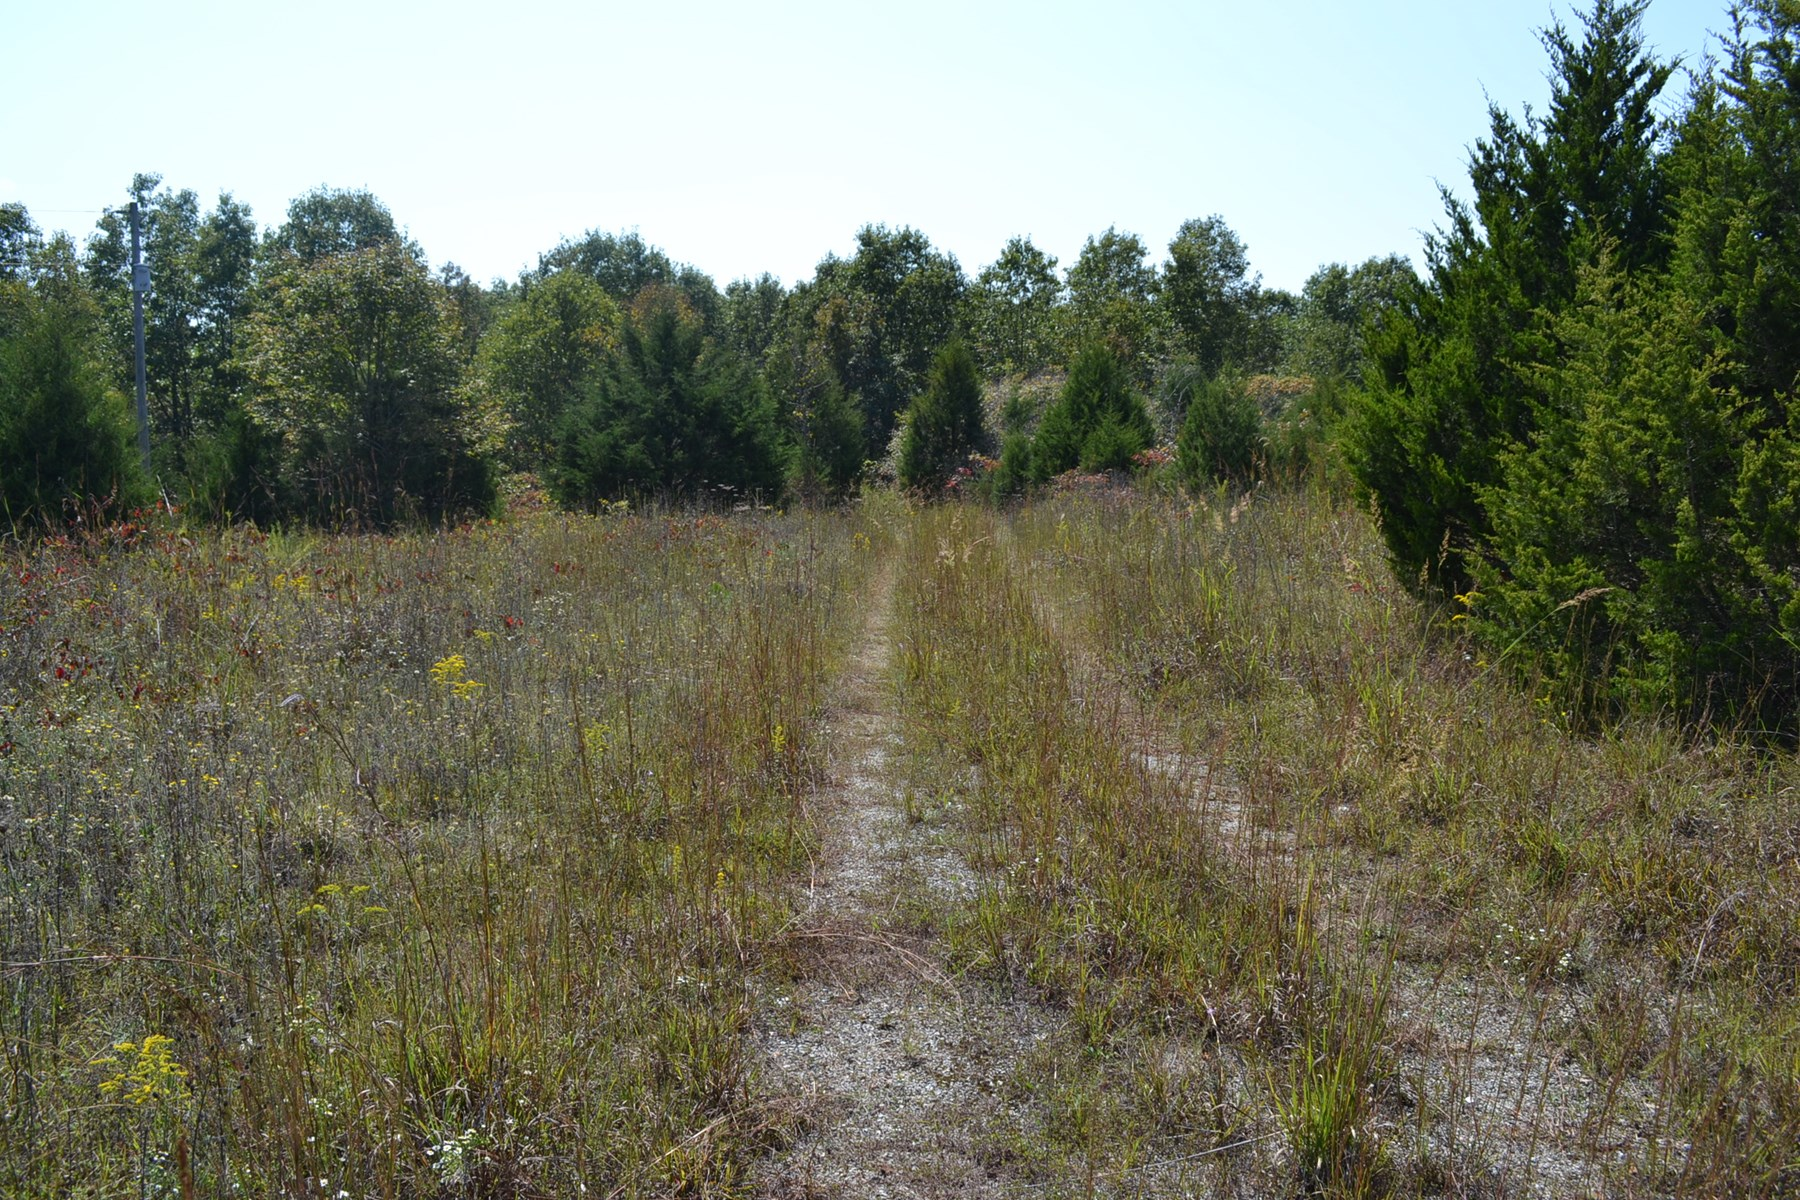 50 Acres m/l - Private Well - Building Site